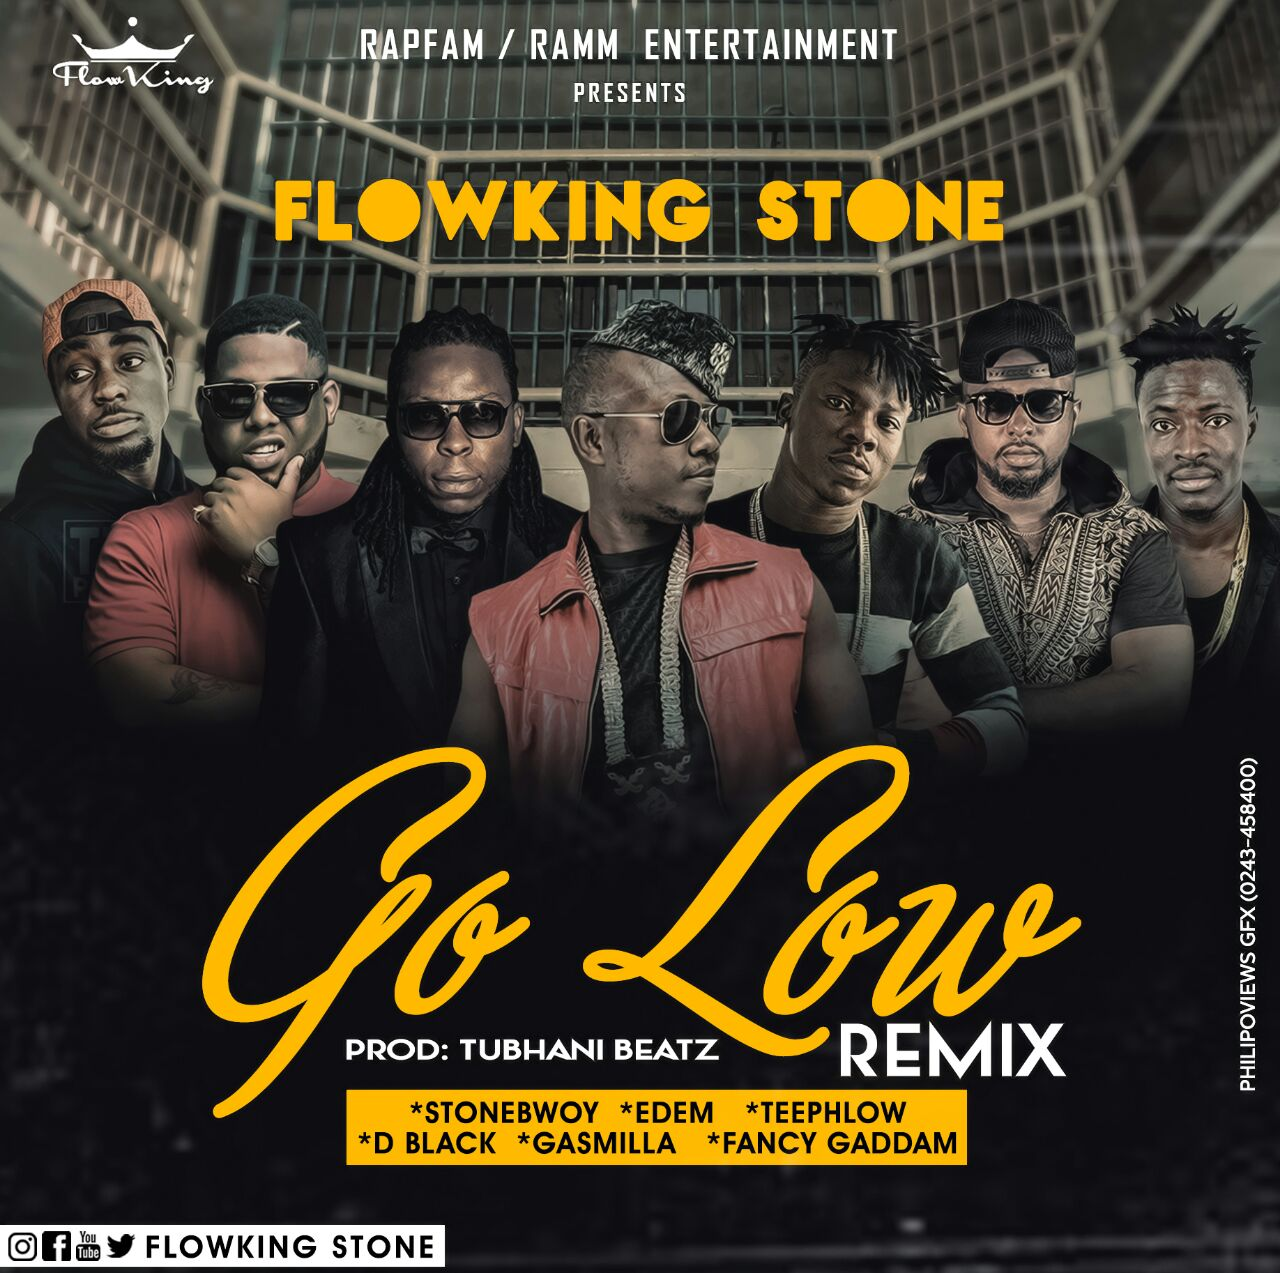 FowKing Stone – Go Low (Remix) ft Stonebwoy, Edem, D Black, Teephlow, Gasmilla, Fancy Gadam (Prod by TubhaniBeatz)